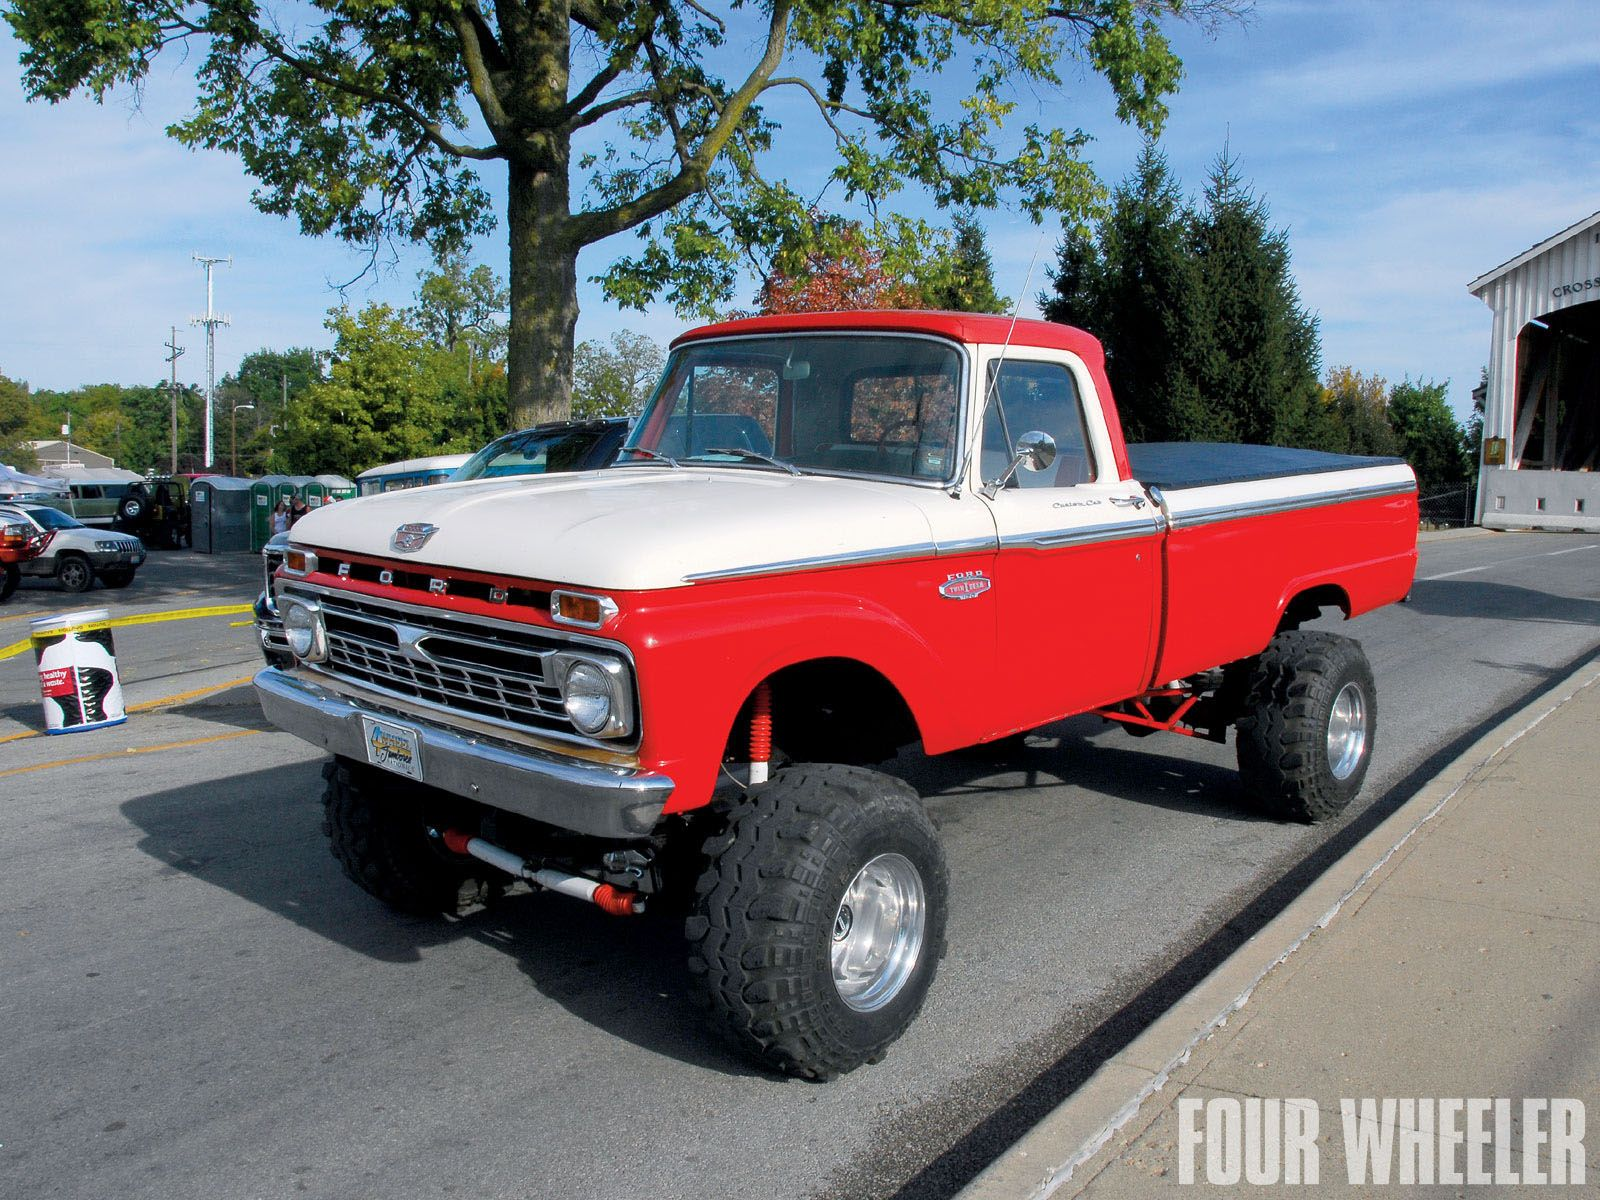 1966 ford f100 4x4 maintenance restoration of old vintage vehicles